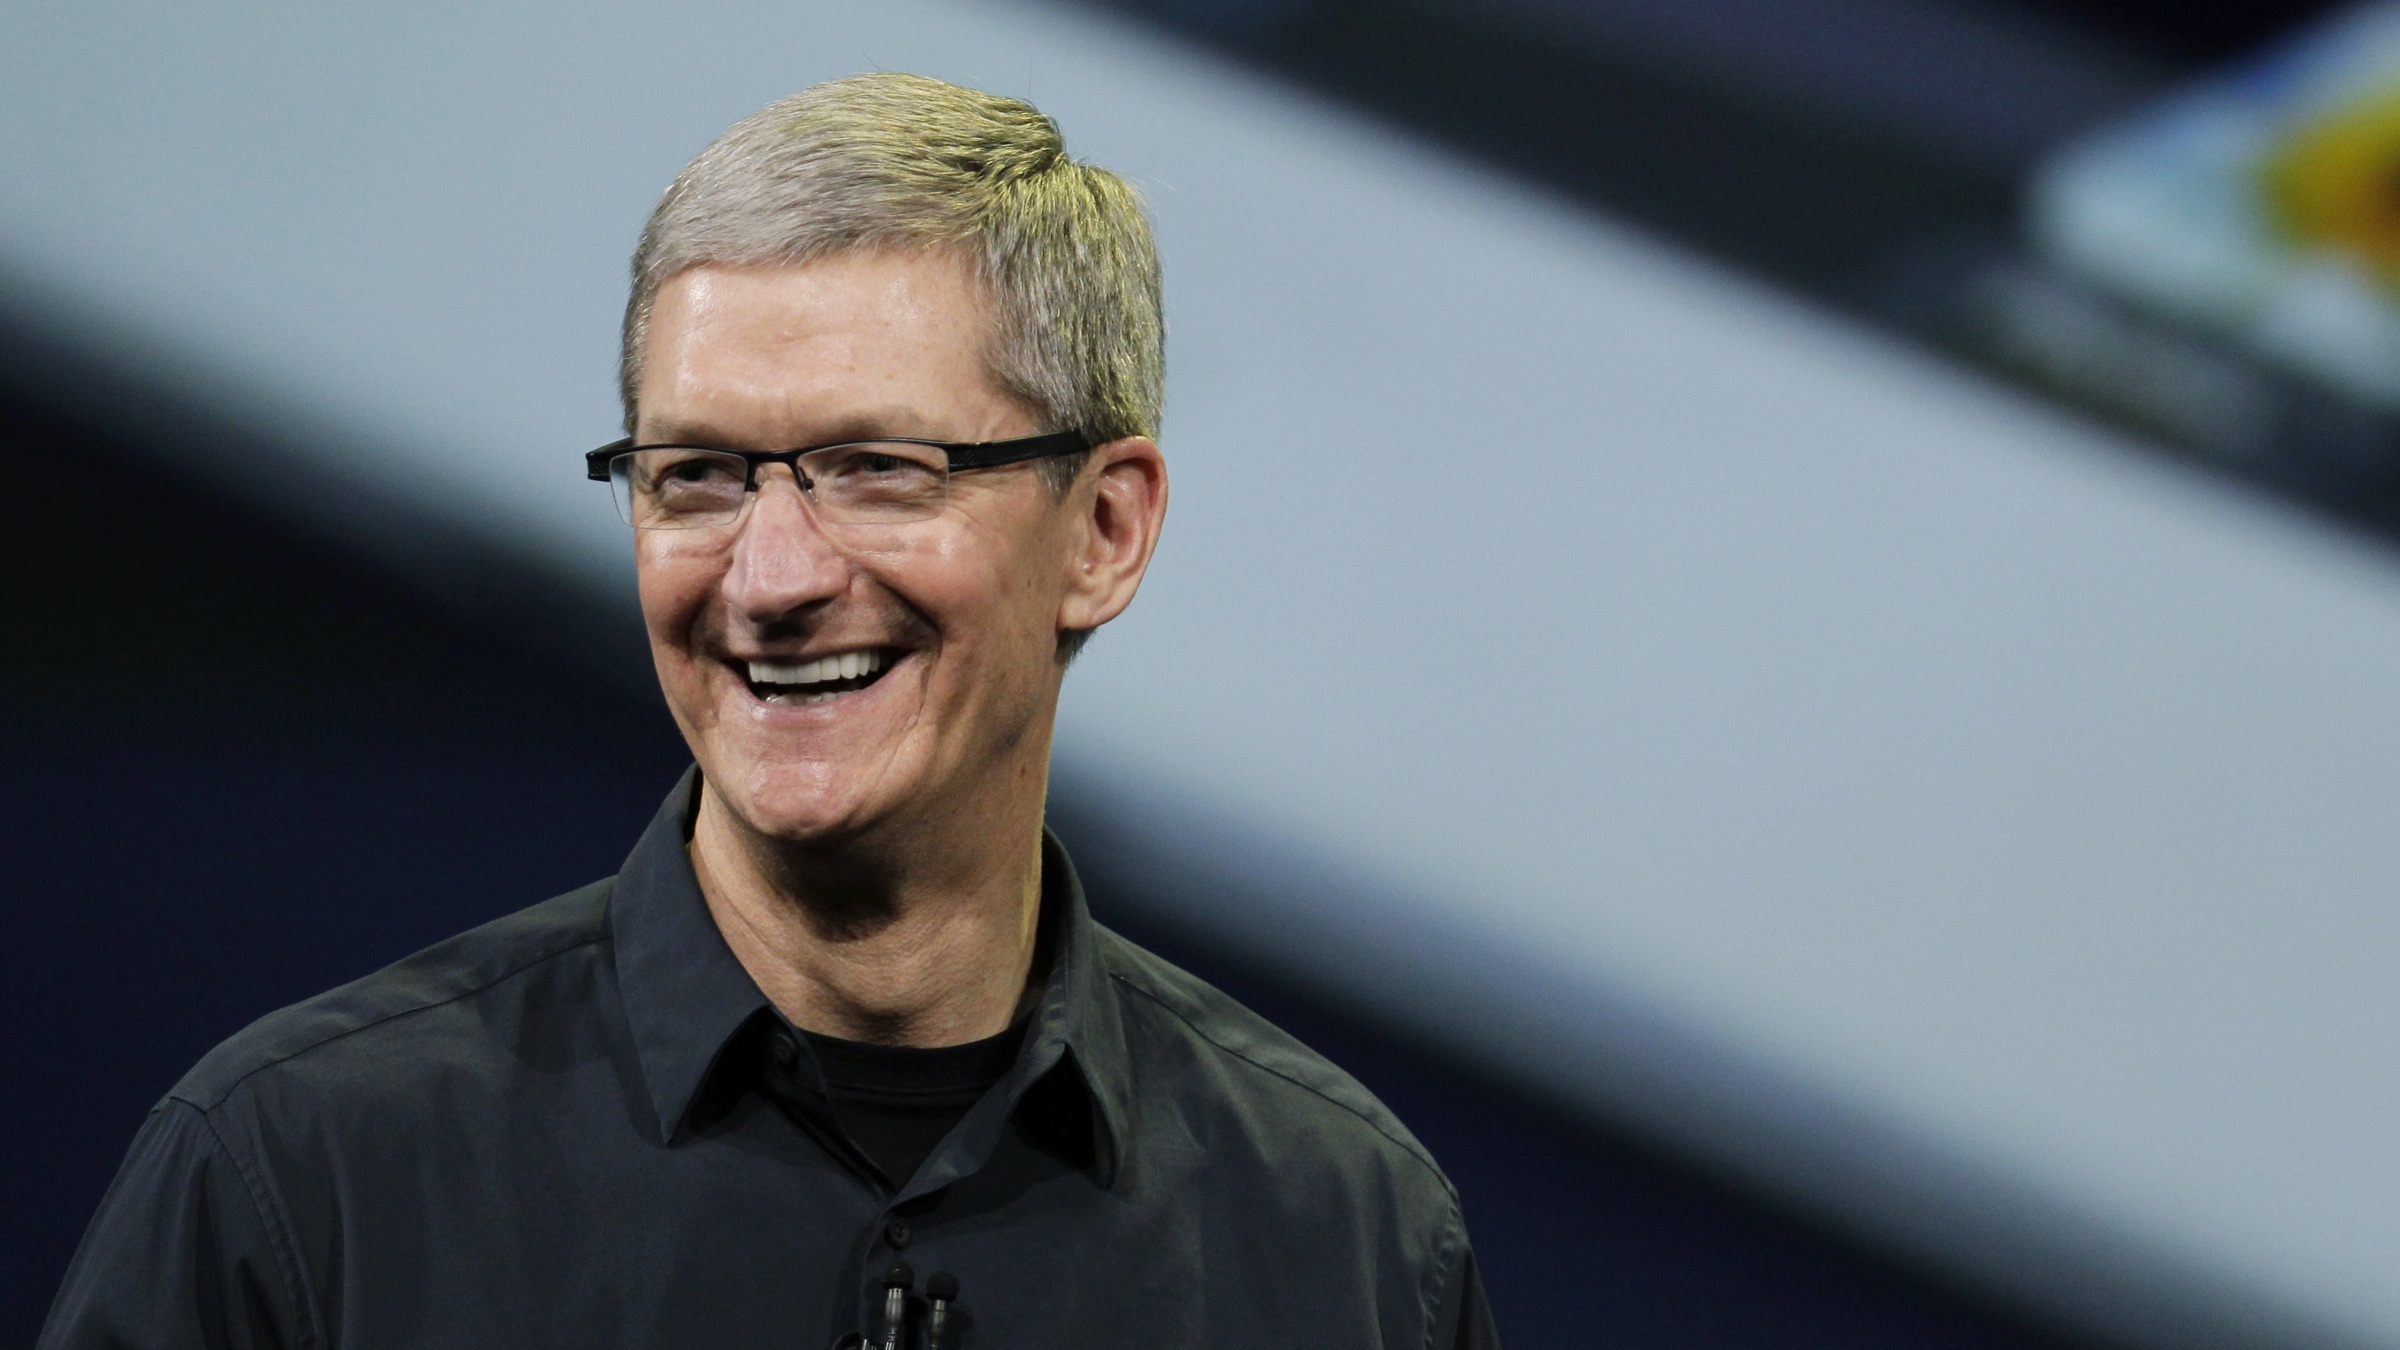 In this Wednesday, March 7, 2012 photo, Apple CEO Tim Cook announces the new iPad in San Francisco. Cook, long seen as the mechanic that kept the Apple machine humming along, is revealing a confident and eloquent side as he starts to emerge from the shadow of Steve Jobs. (AP Photo/Paul Sakuma)